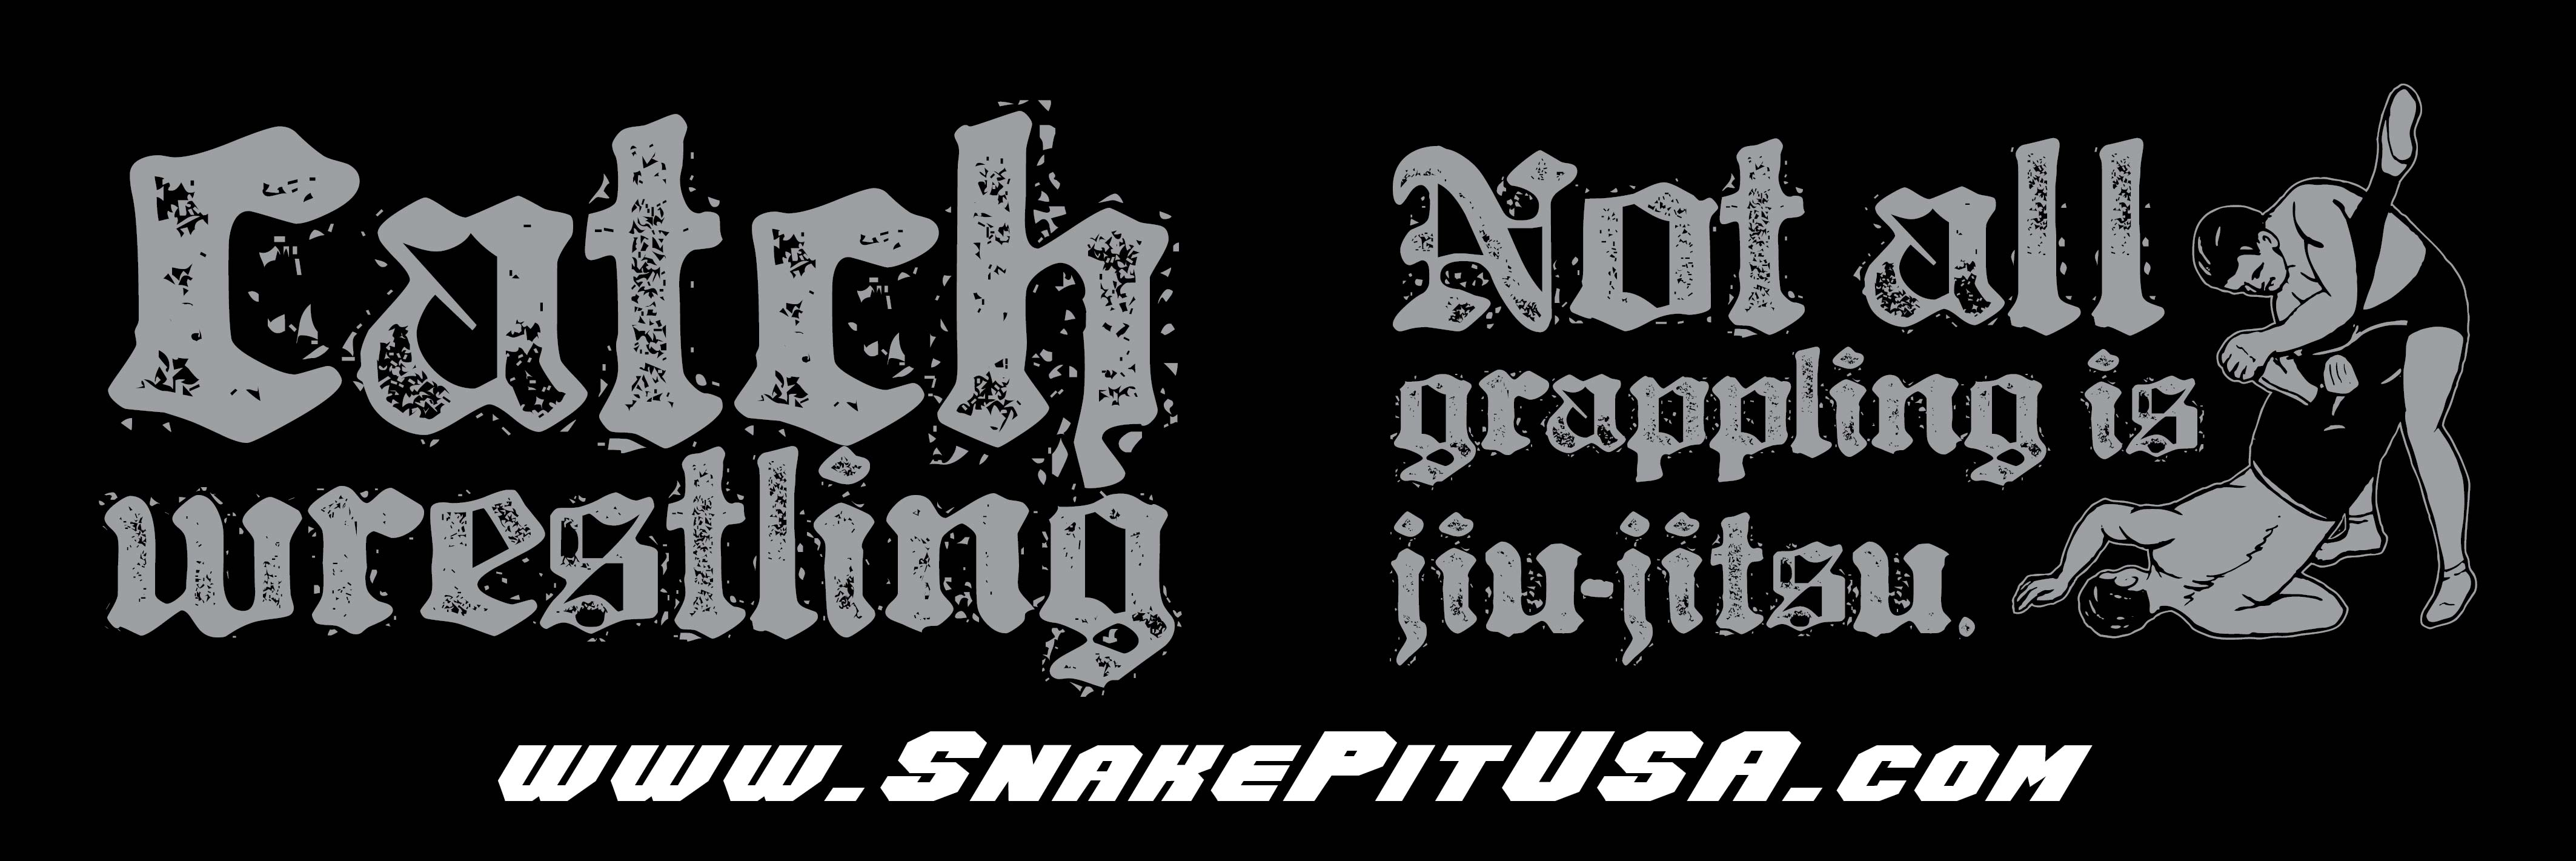 3 Not All Grappling is Jiu Jitsu sticker